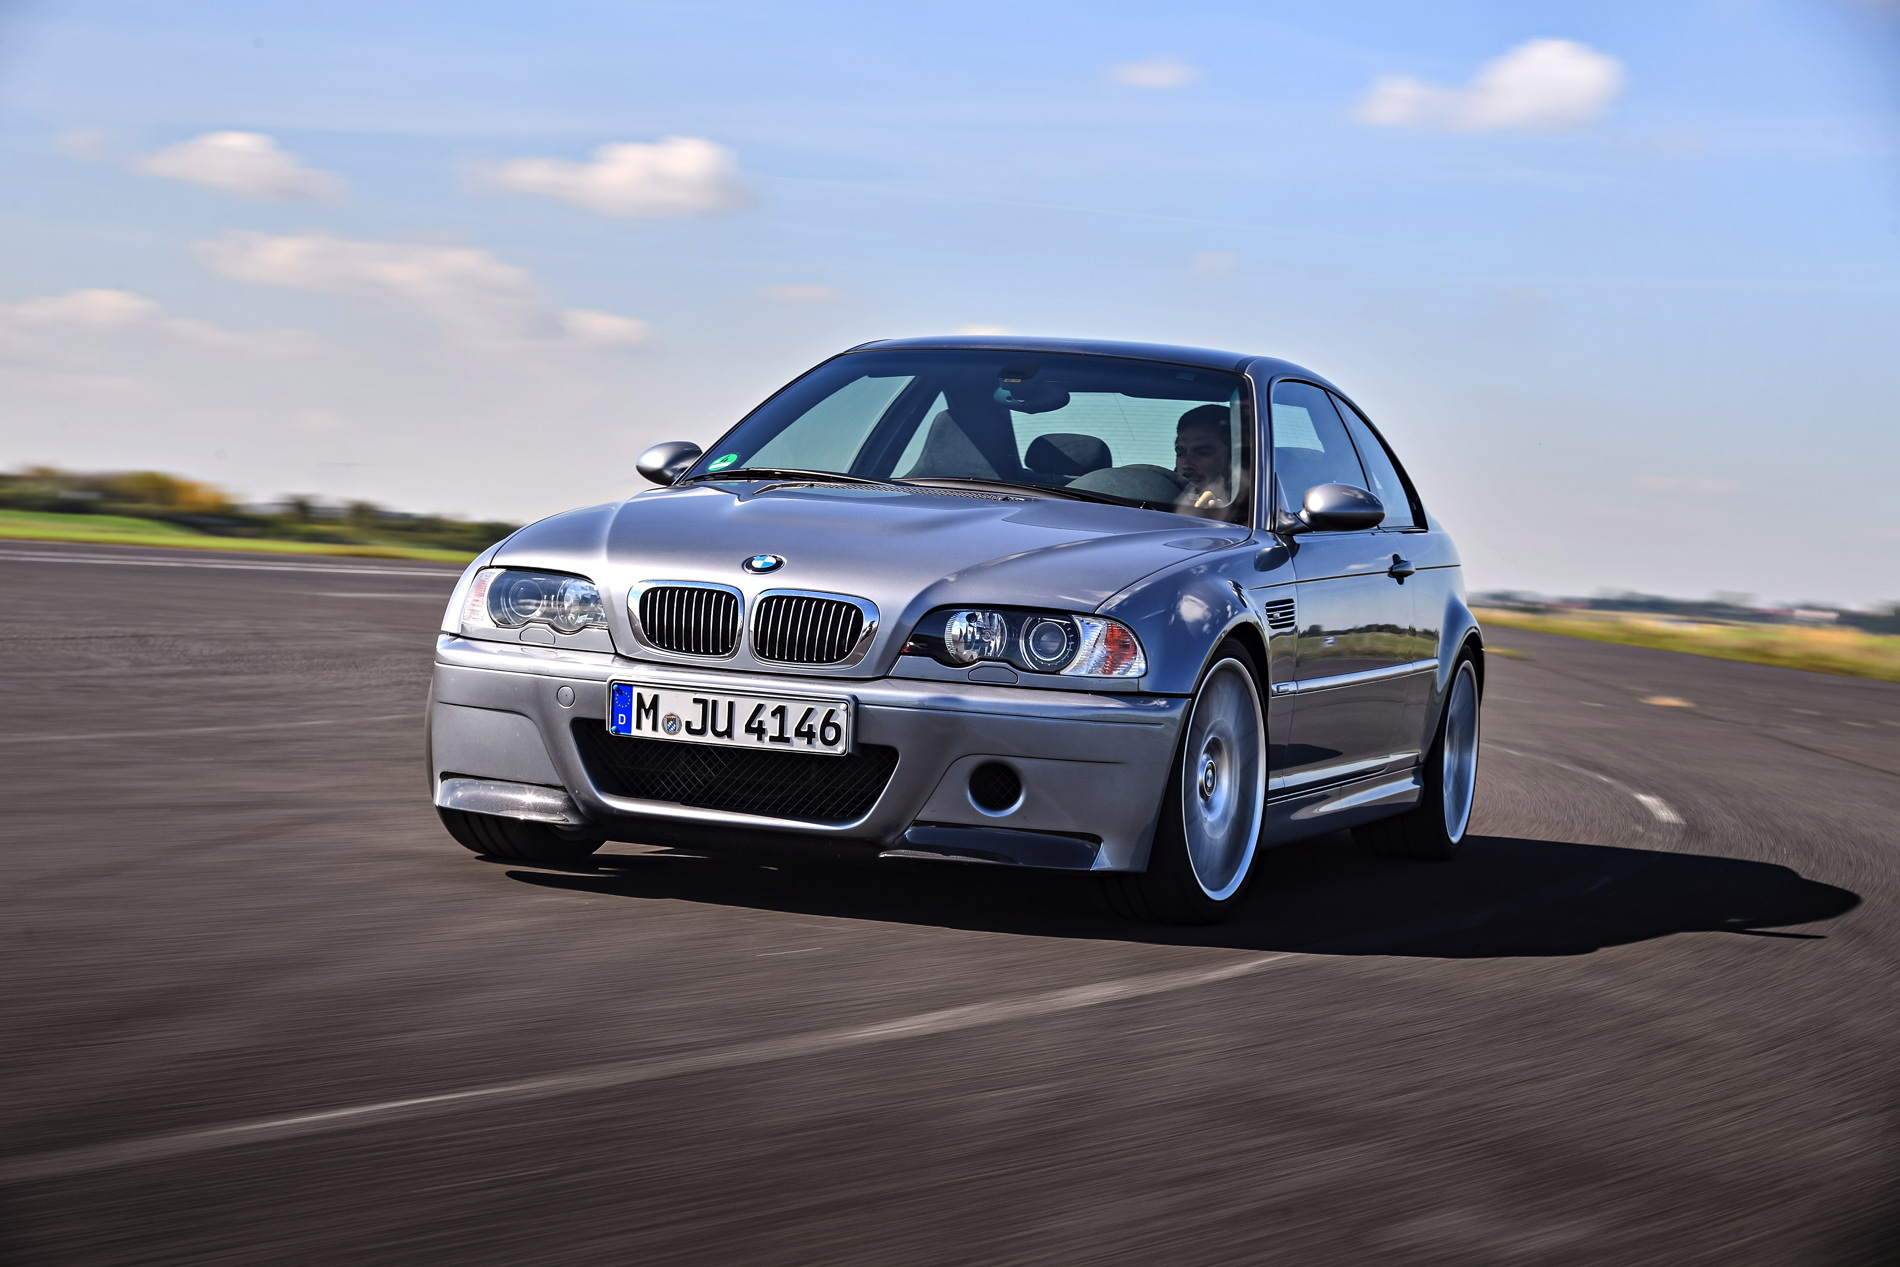 Bmw E46 M3 >> The One And Only: BMW E46 M3 CSL